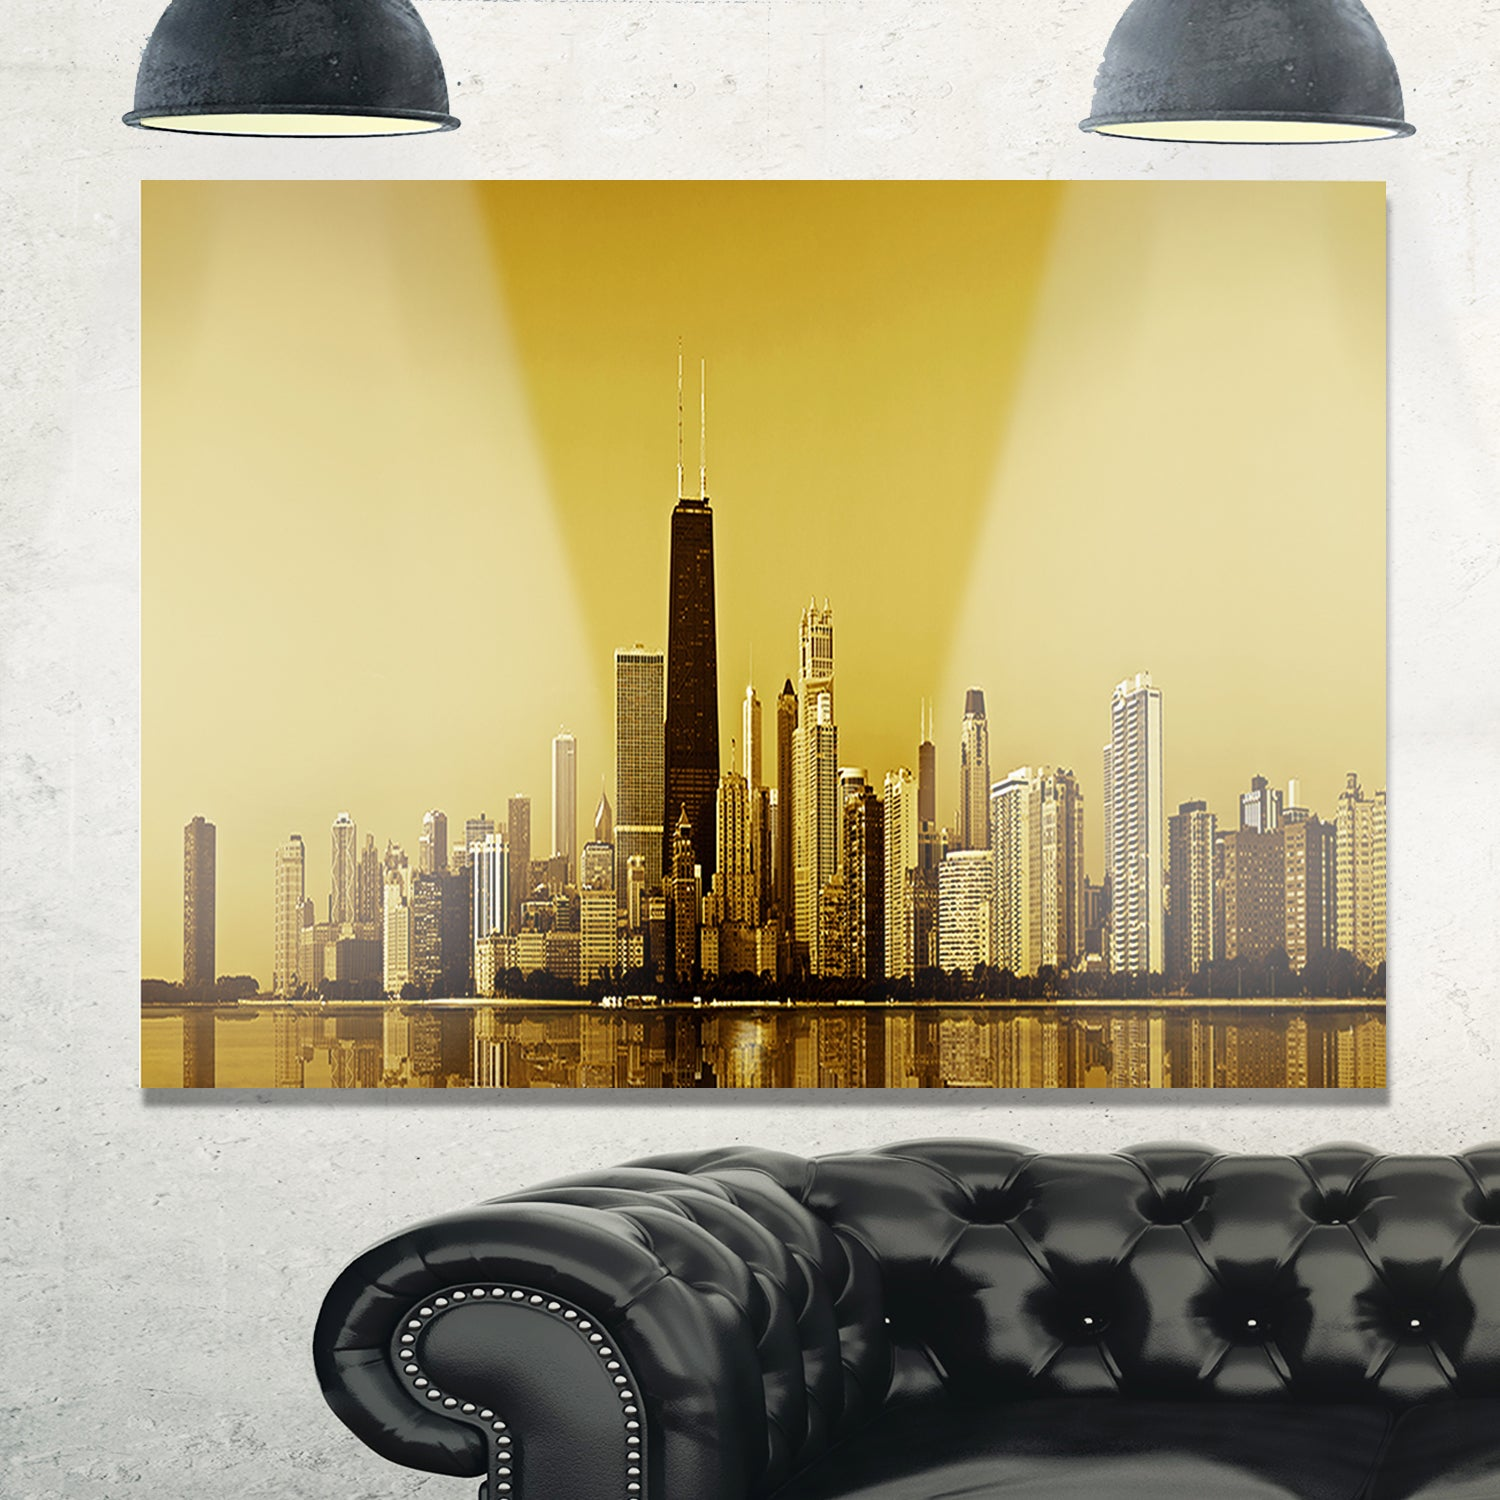 Shop Chicago Gold Coast with Skyscrapers - Cityscape Glossy Metal ...